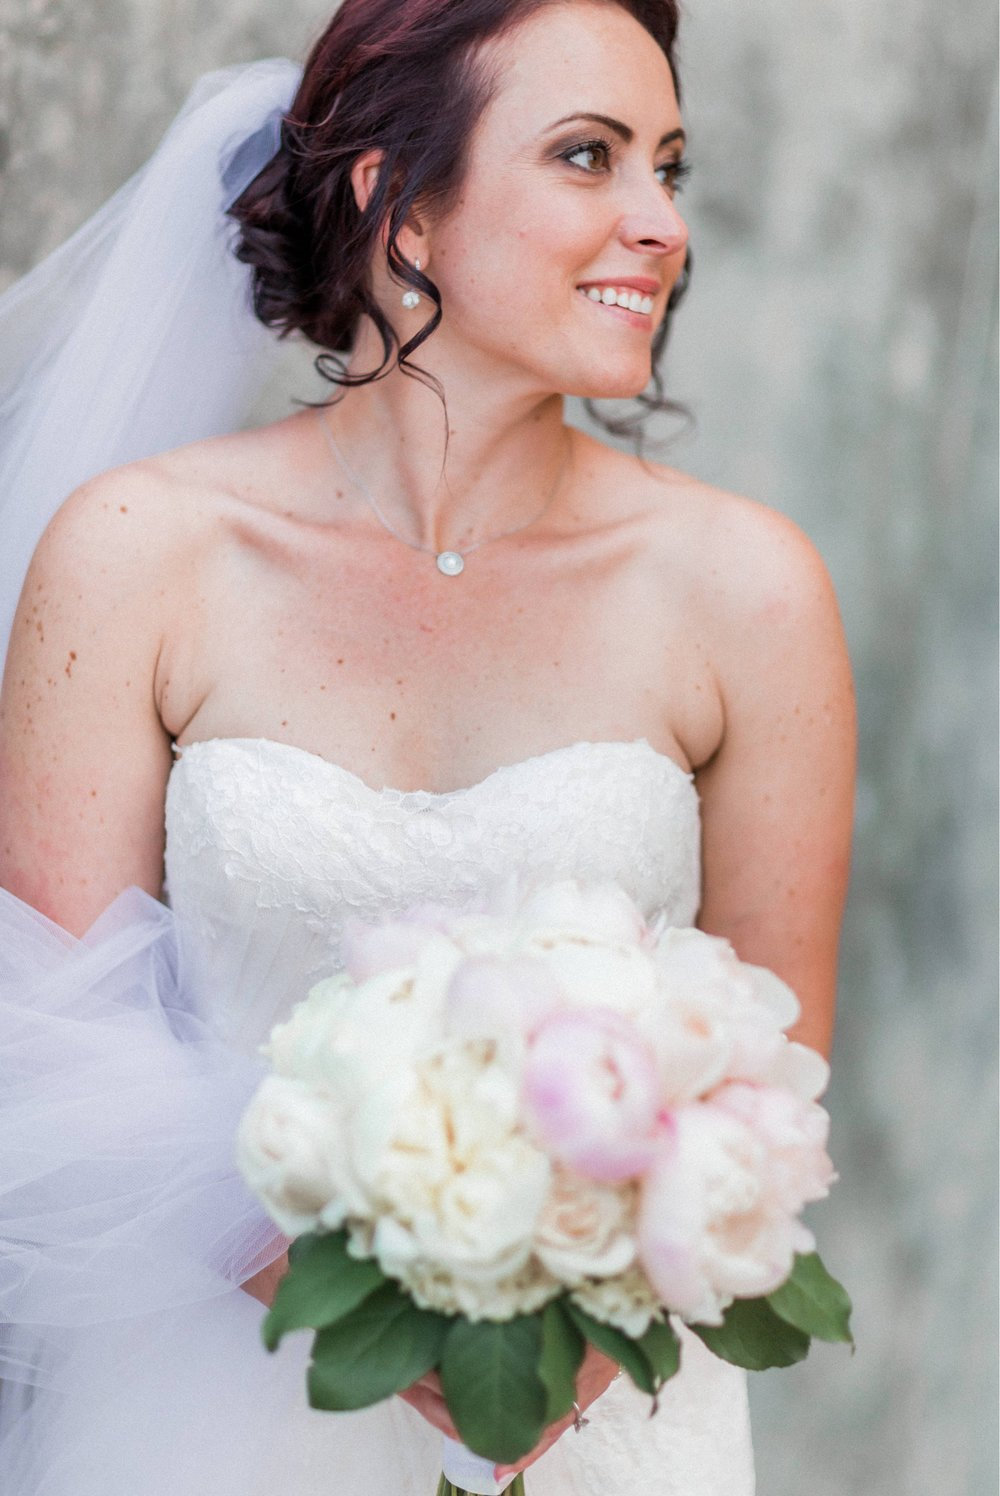 Romantic Pink Spring Wedding - Katie + Joe by Orlando Wedding Photographer Shaina DeCiryan 34.jpg